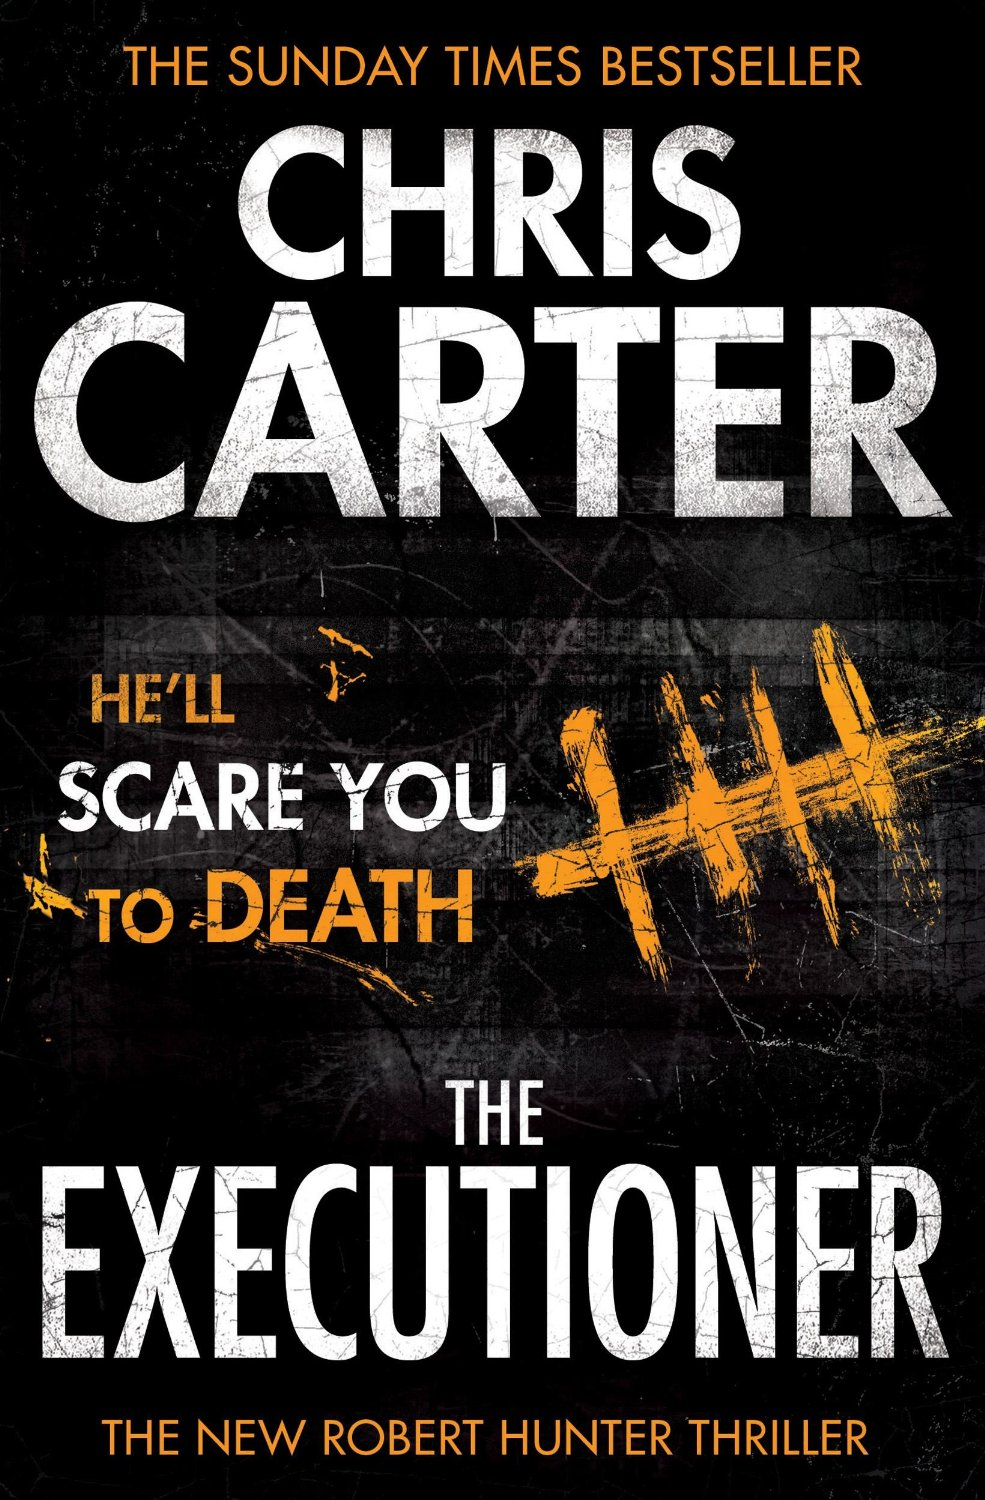 Book cover of The Executioner